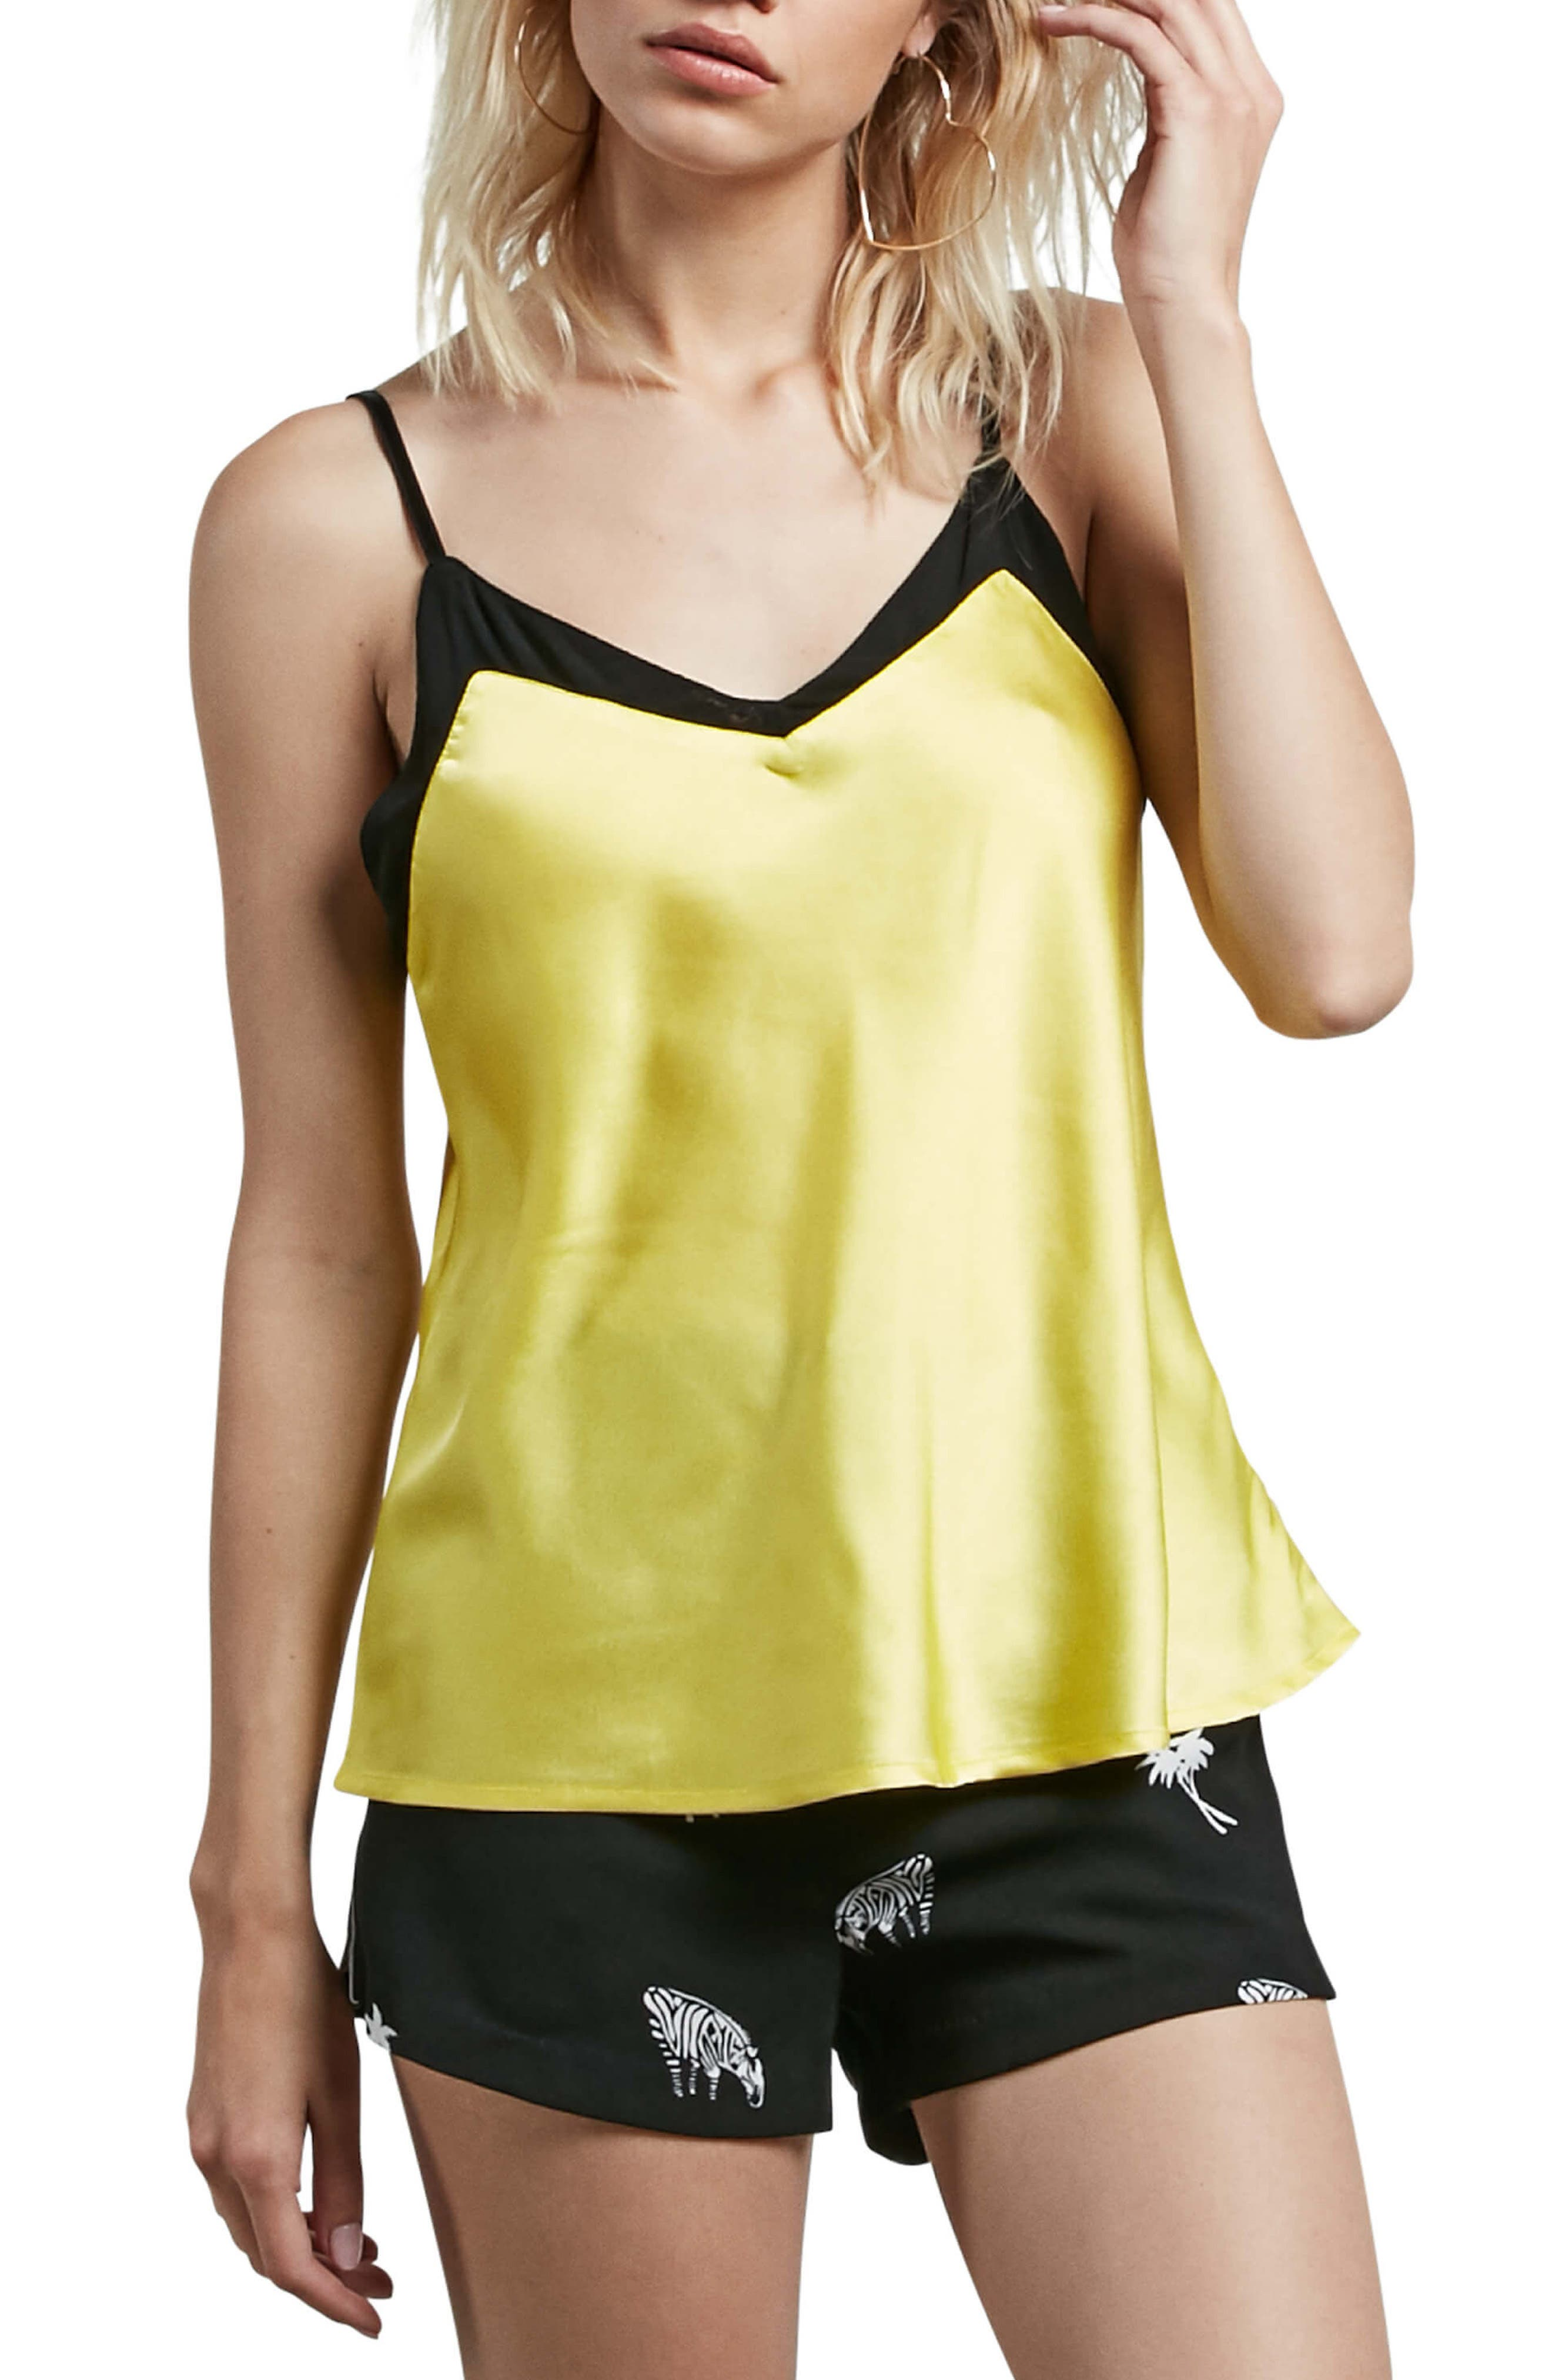 It's Happening Satin Camisole,                         Main,                         color, 734